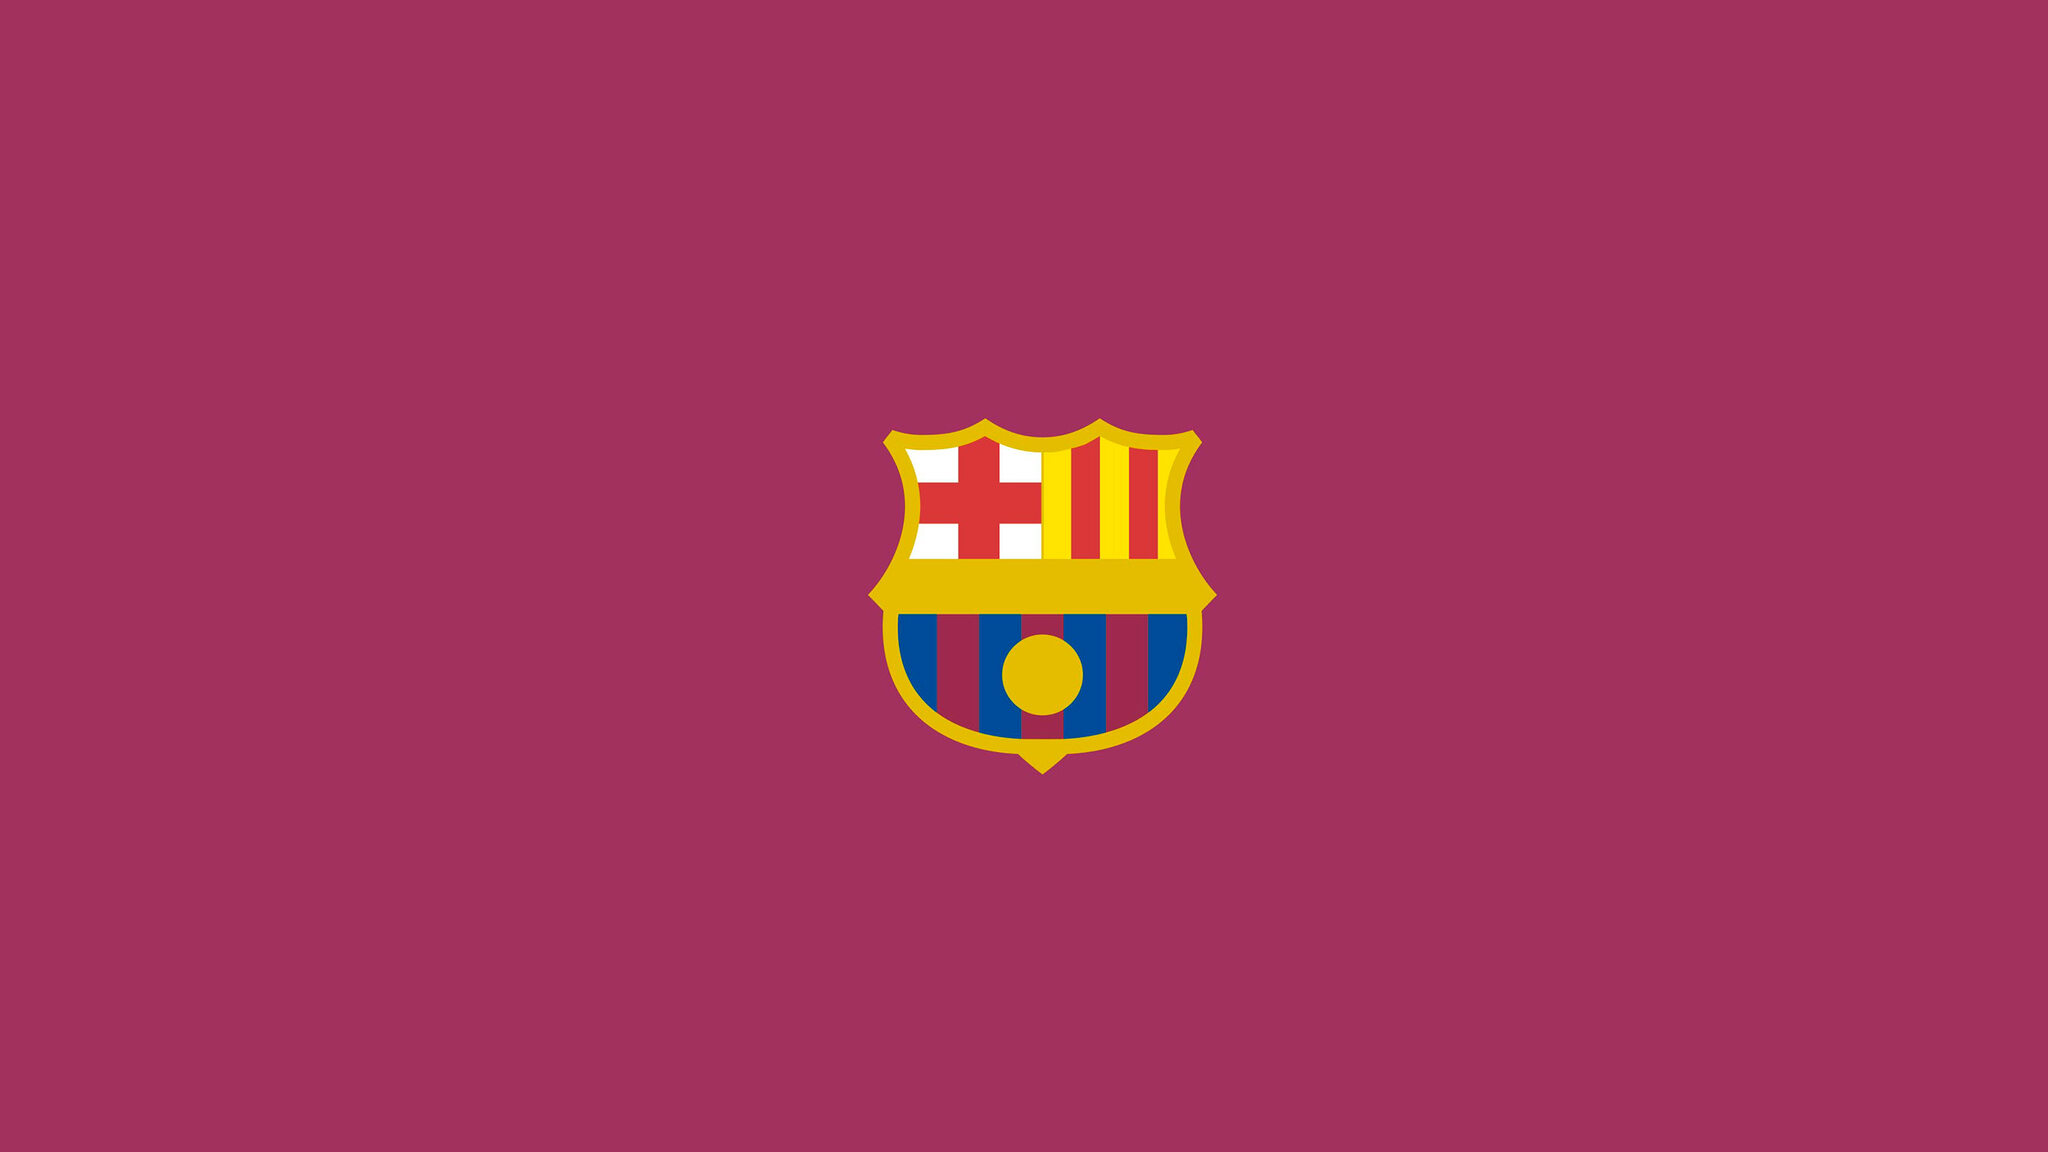 2048x1152 Fc Barcelona Logo Minimalism 2048x1152 Resolution Hd 4k Wallpapers Images